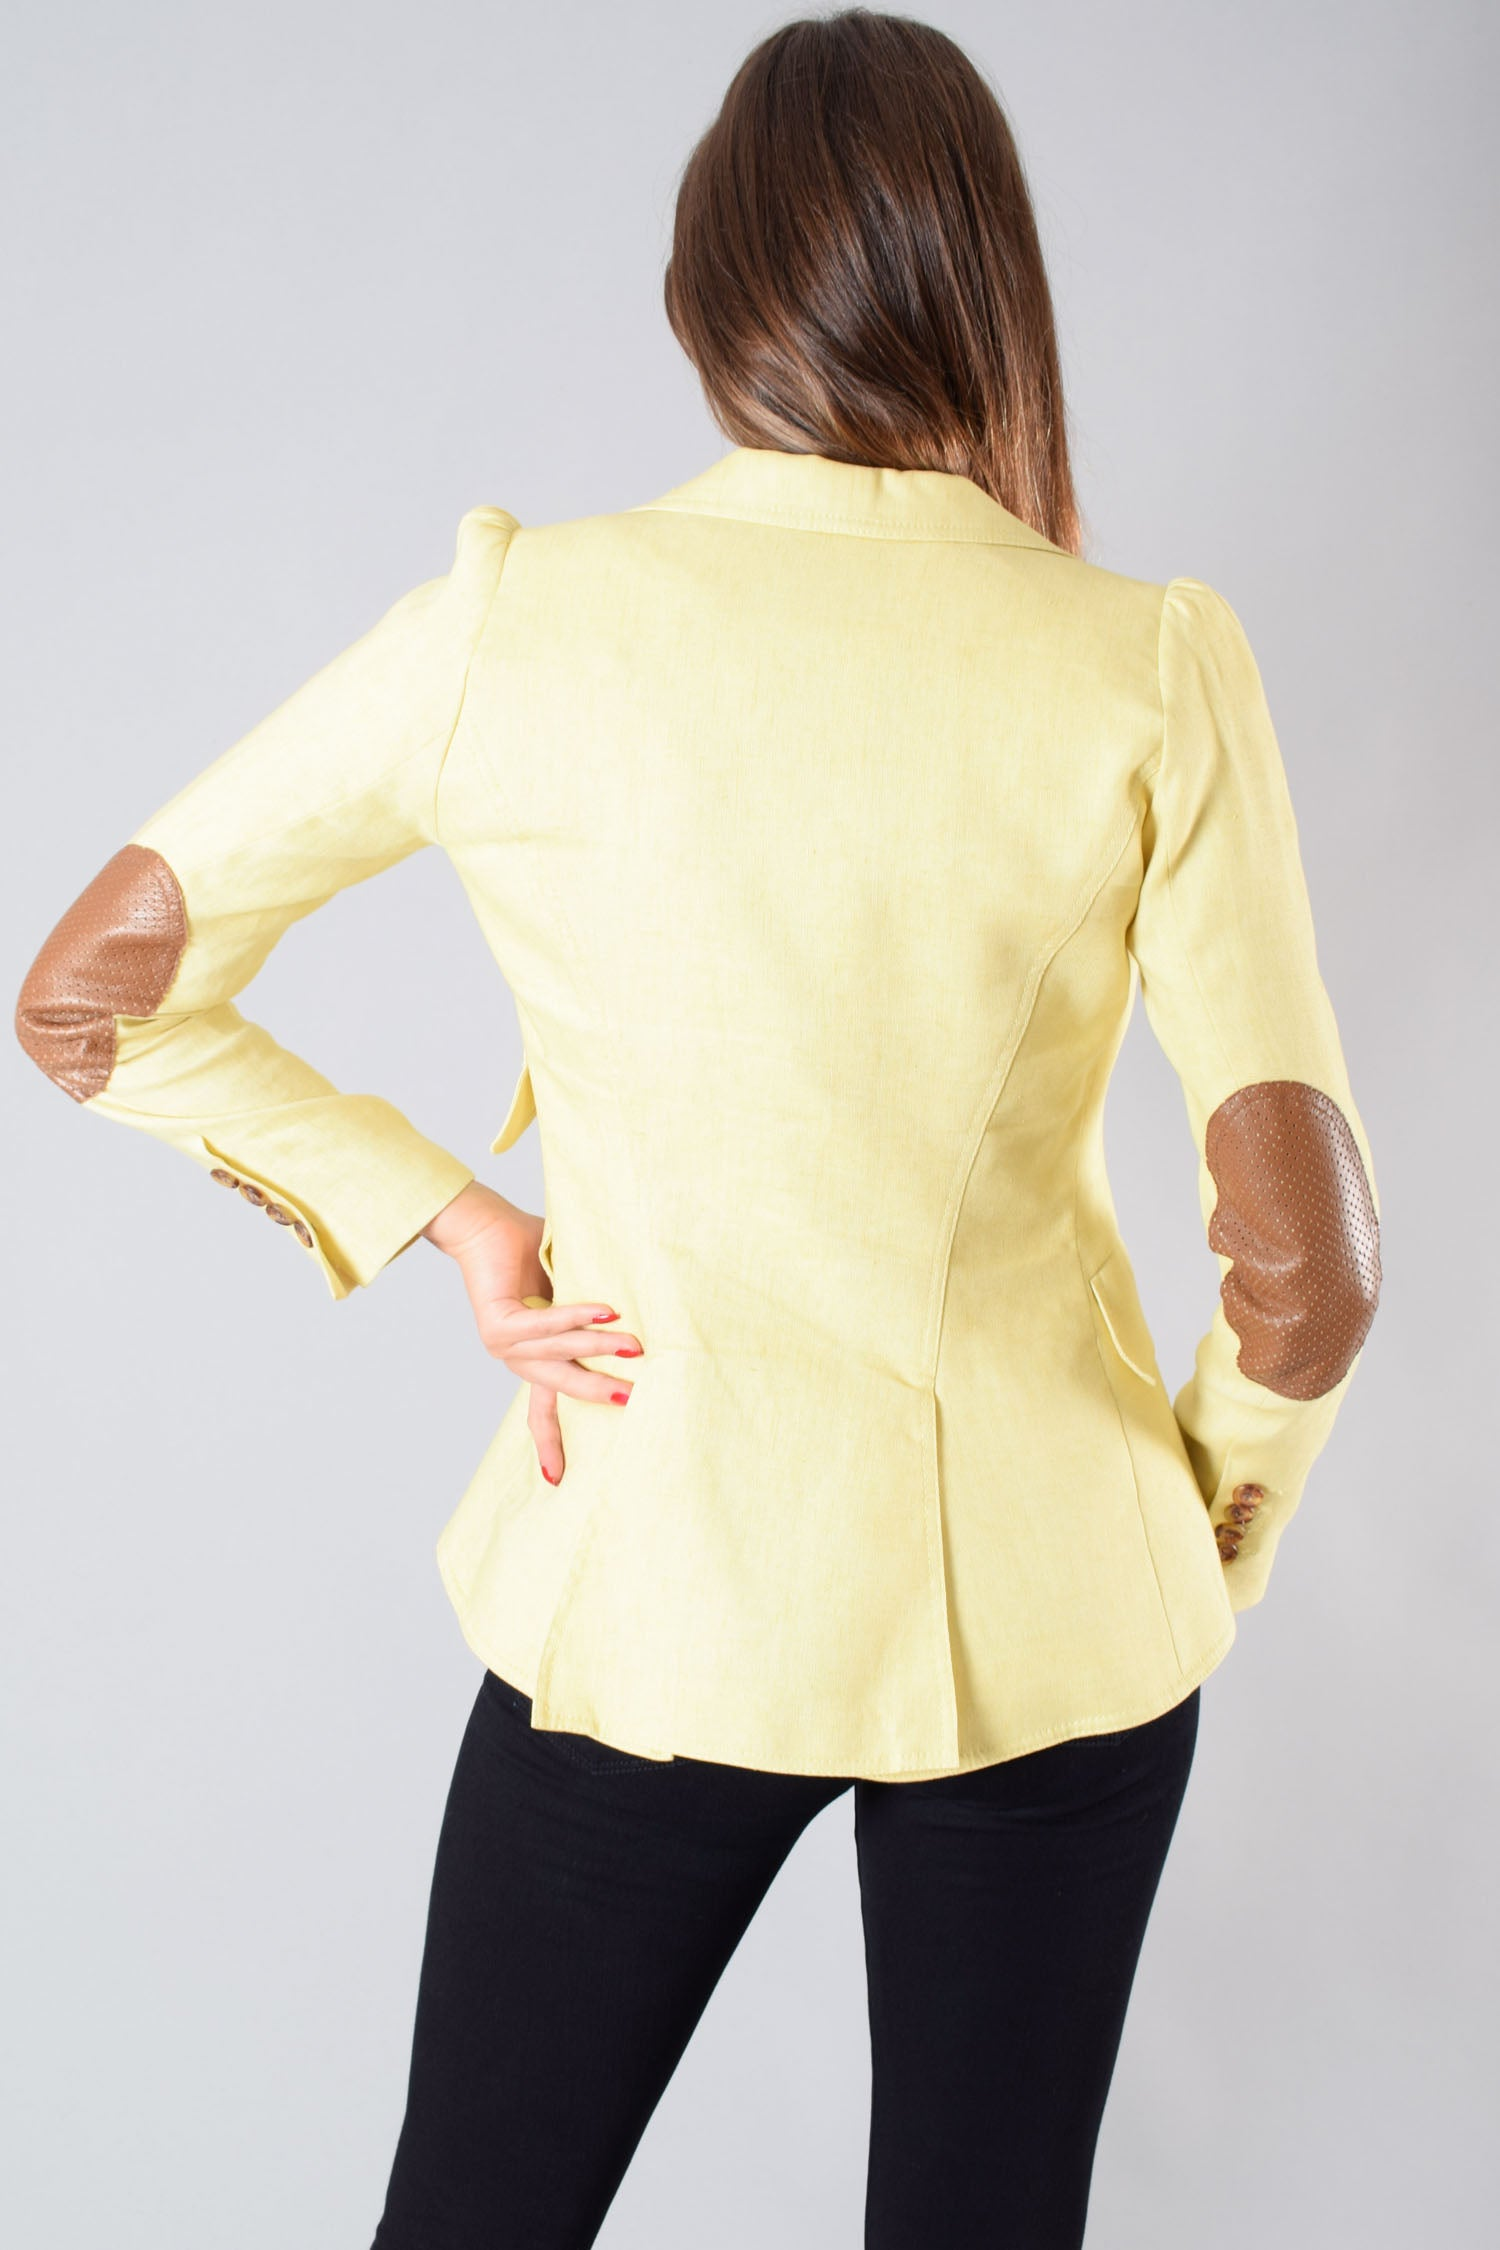 Smythe Yellow Linen Blazer w/ Brown Patches Size 6